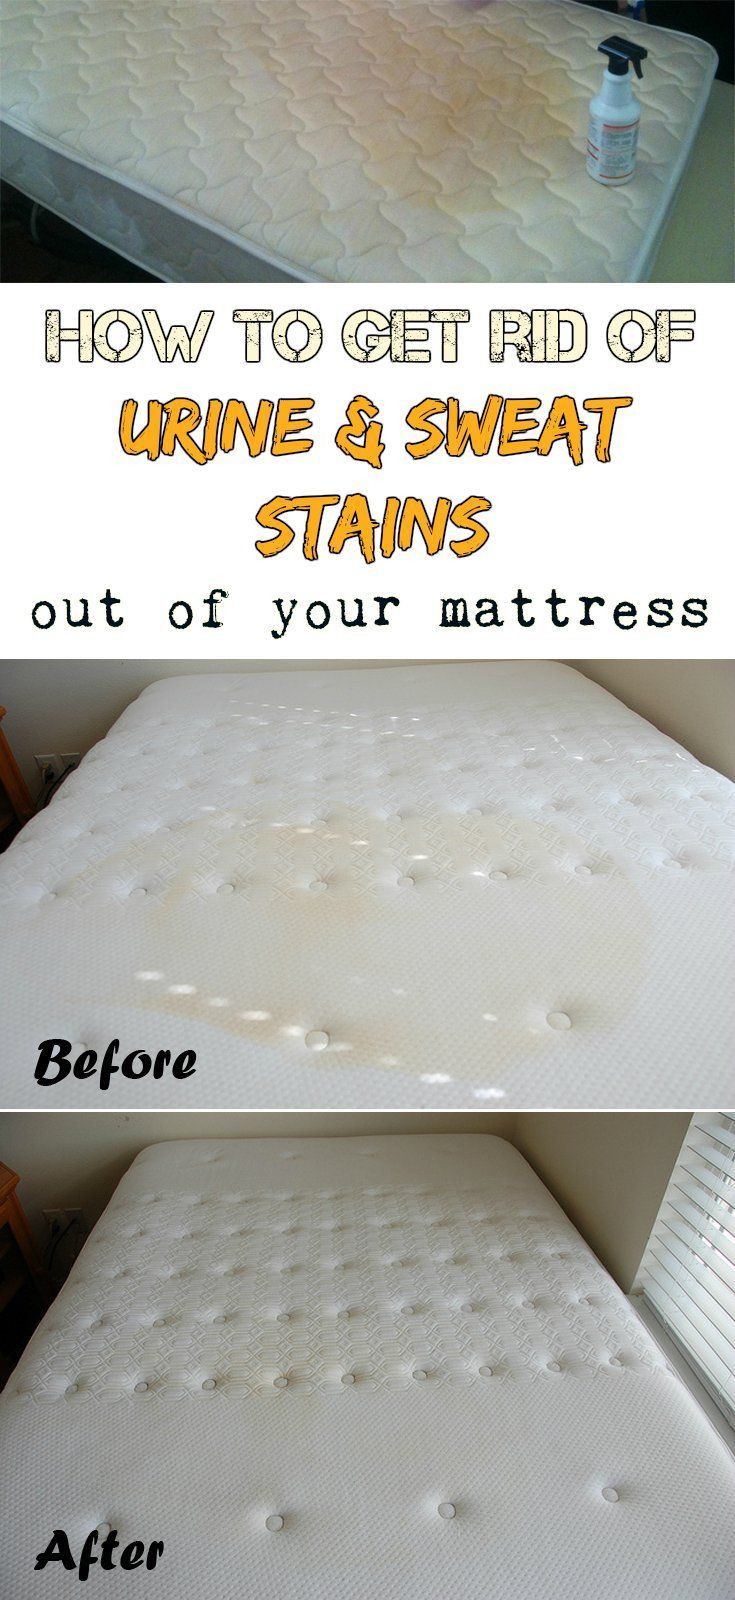 19 Tips To Learn How Get Stains Out Mattress Crazy Houseattress Pad